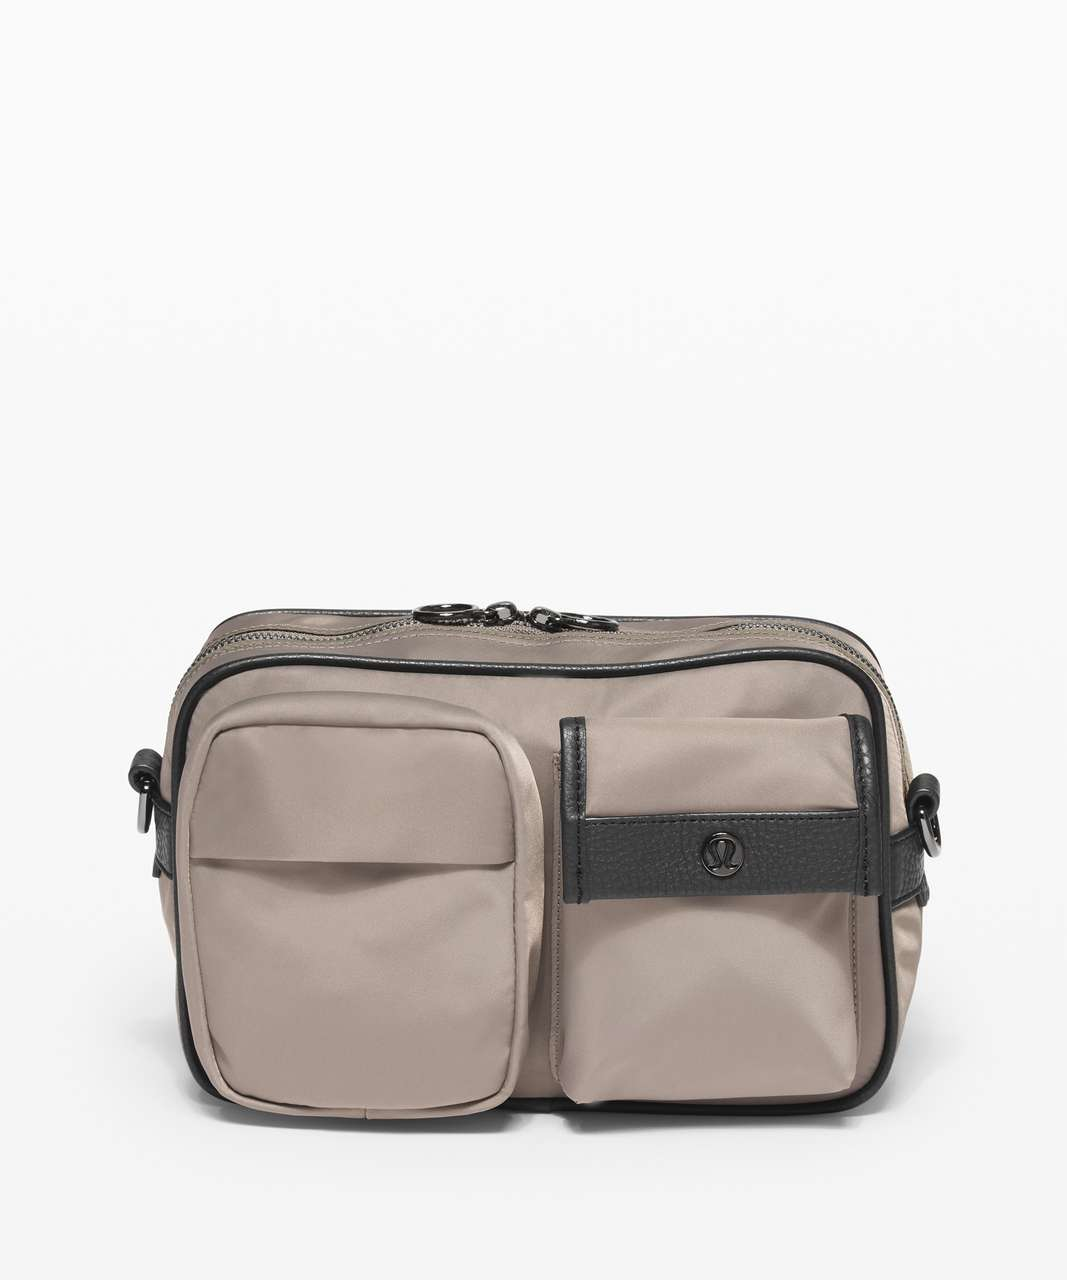 Lululemon Now and Always Hip Pack  *4L - Carbon Dust / Black